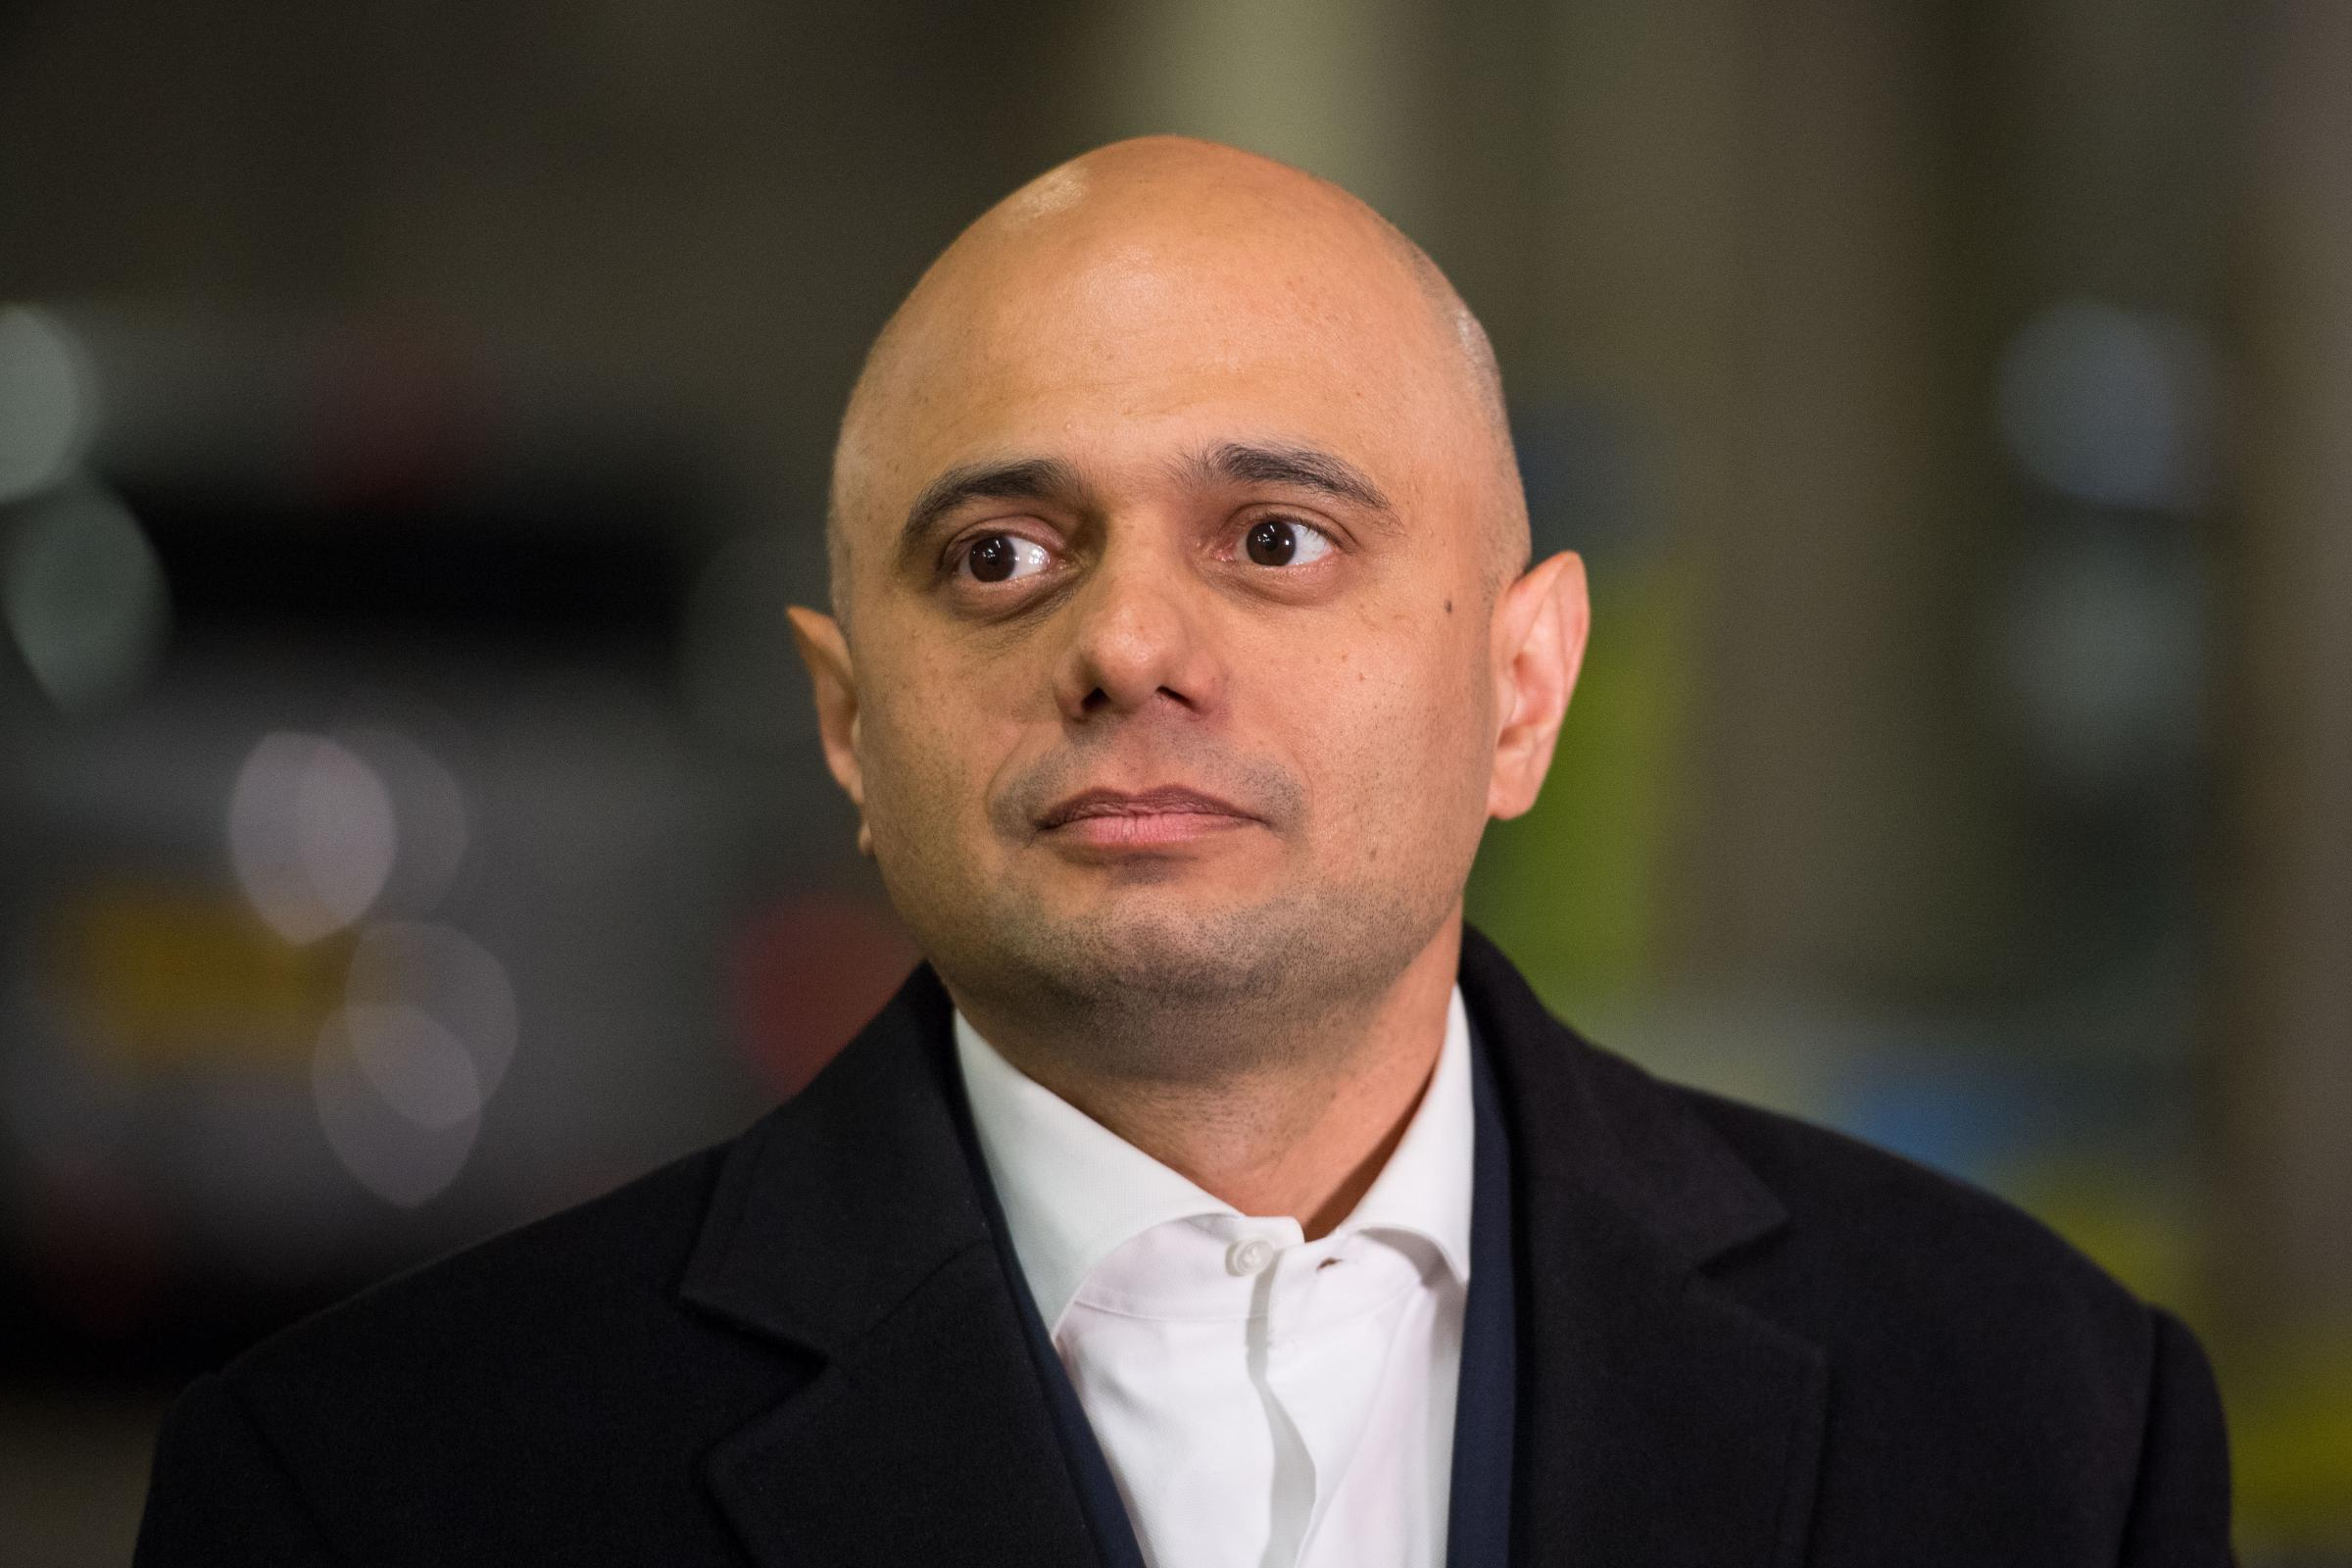 Sajid Javid on social media violence